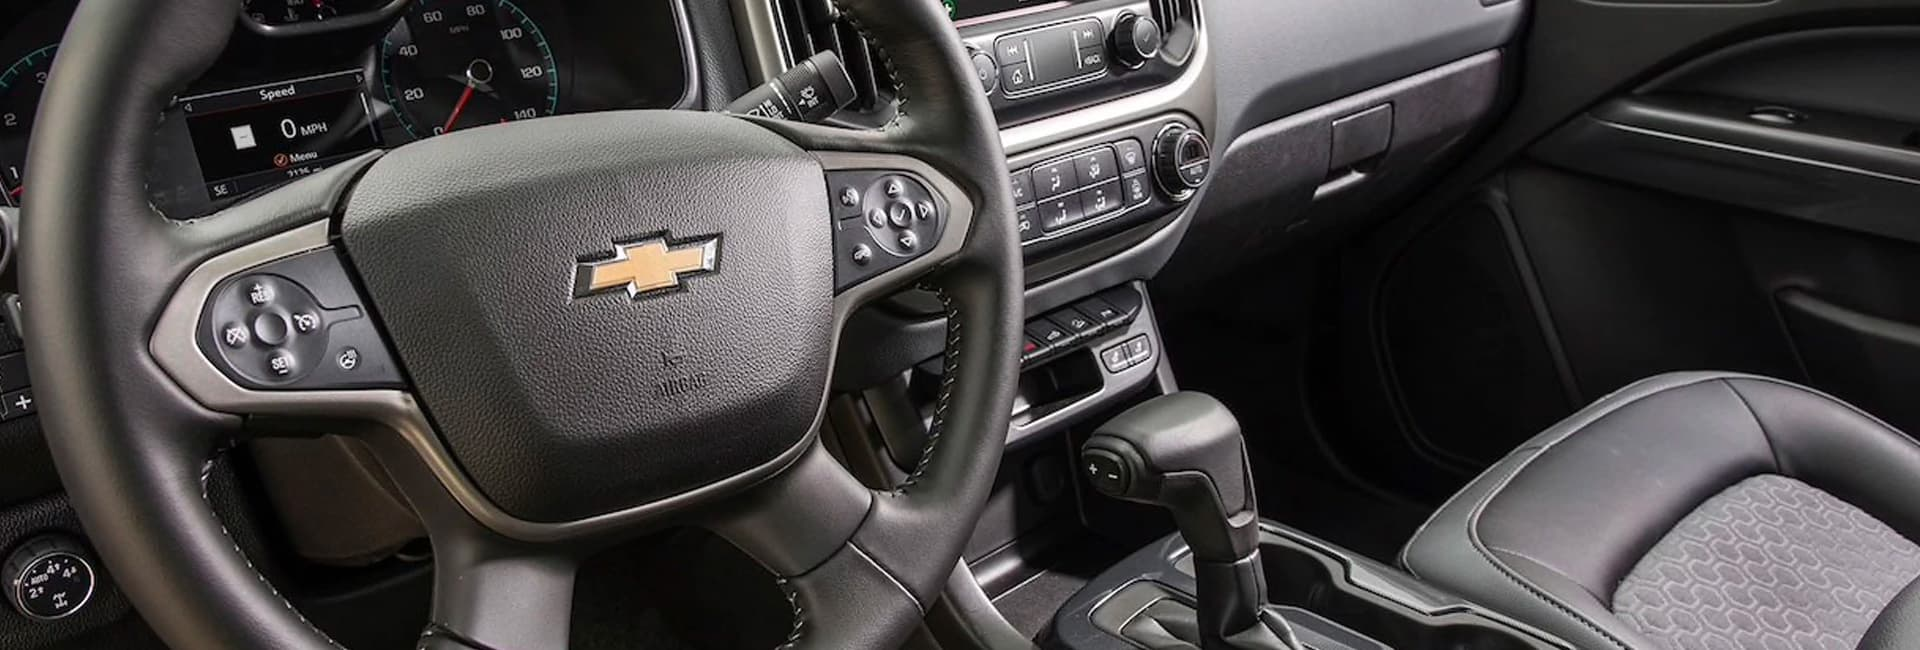 Interior image of the 2020 Chevy Colorado